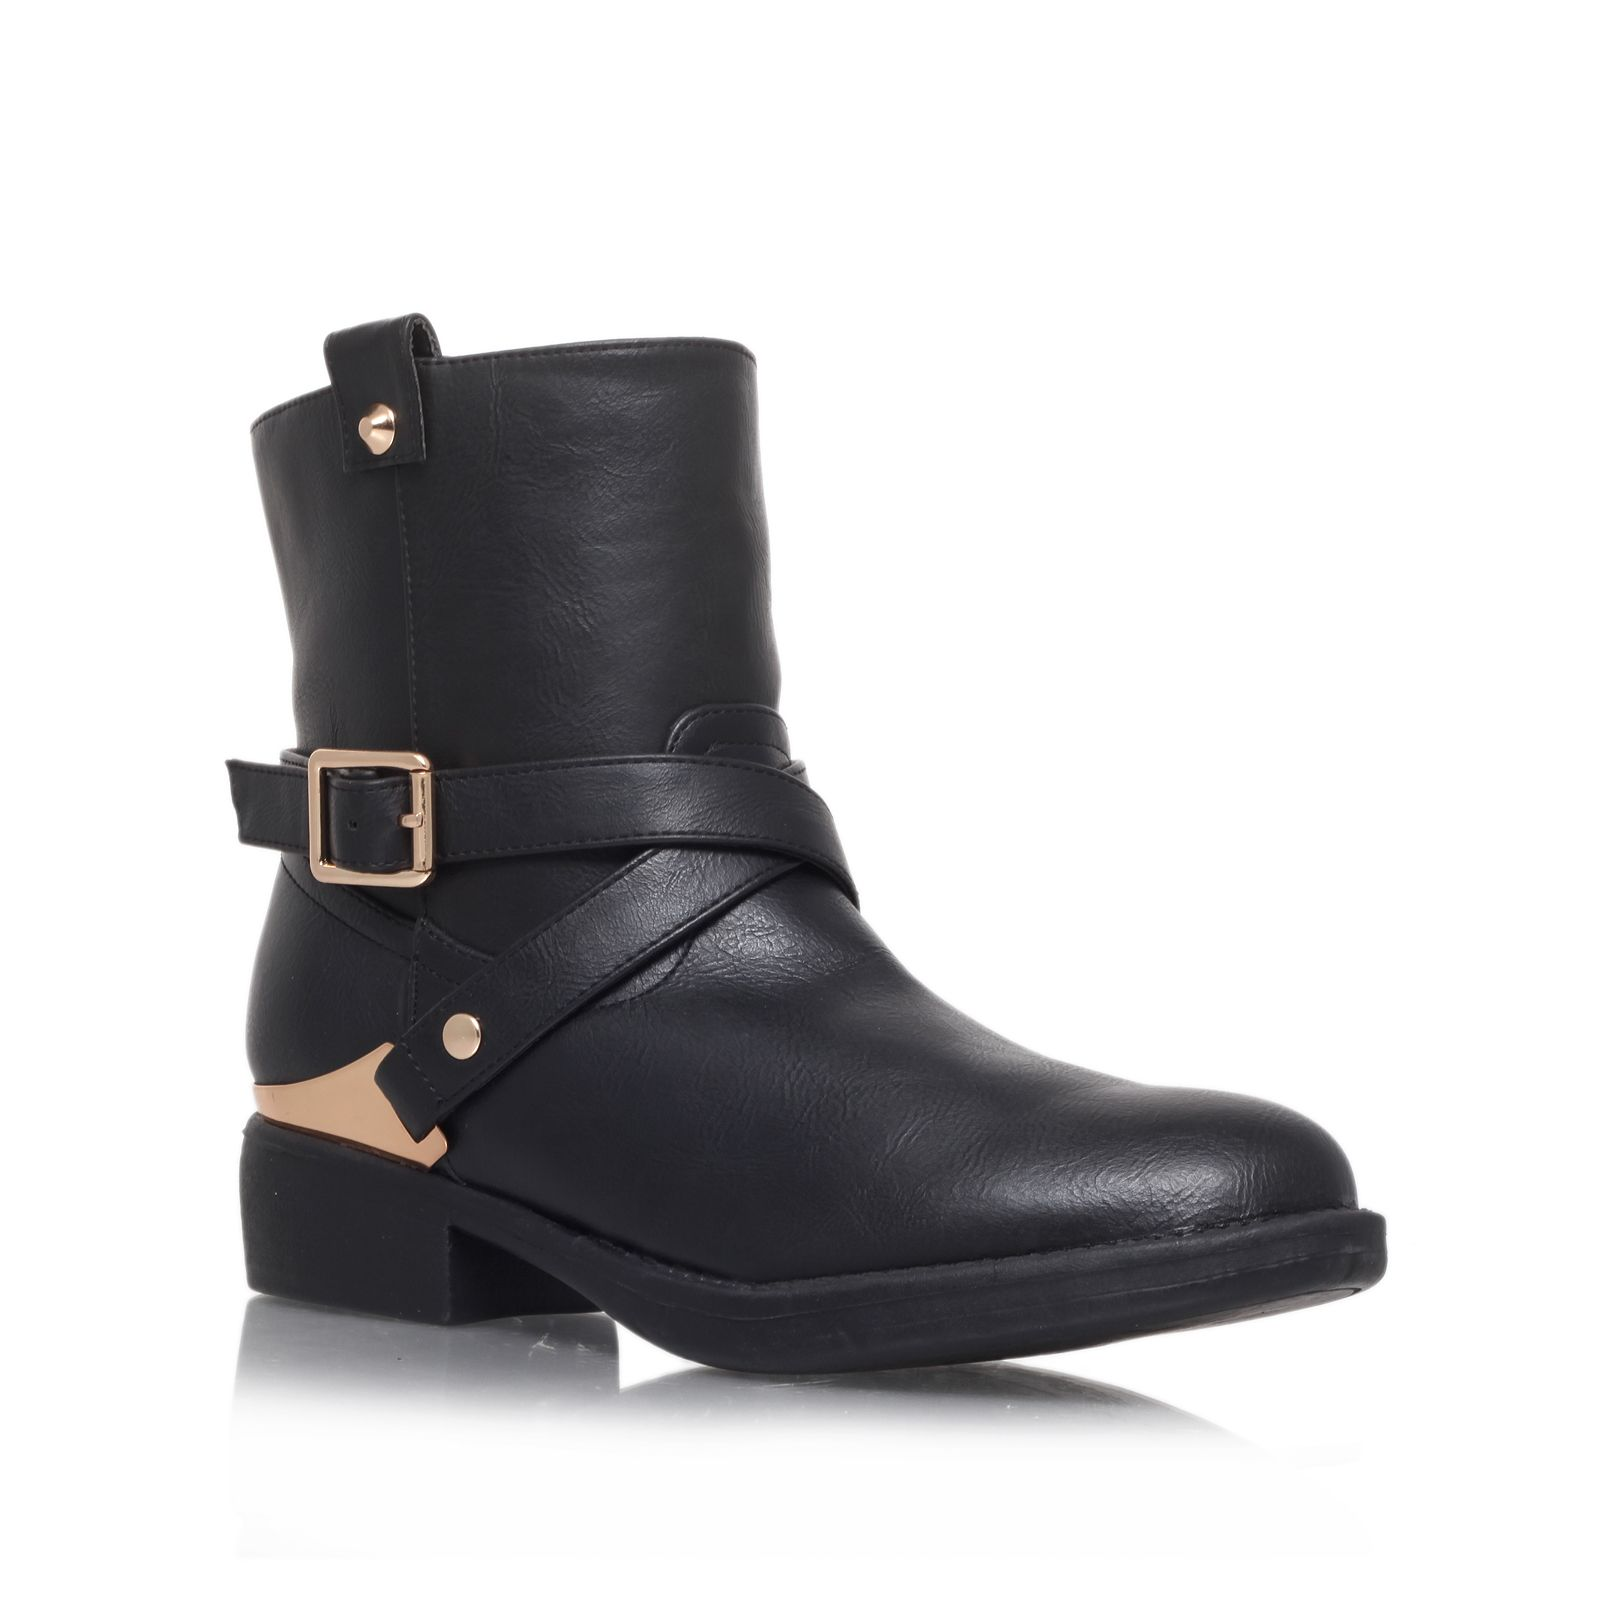 Harrow low heel ankle boots